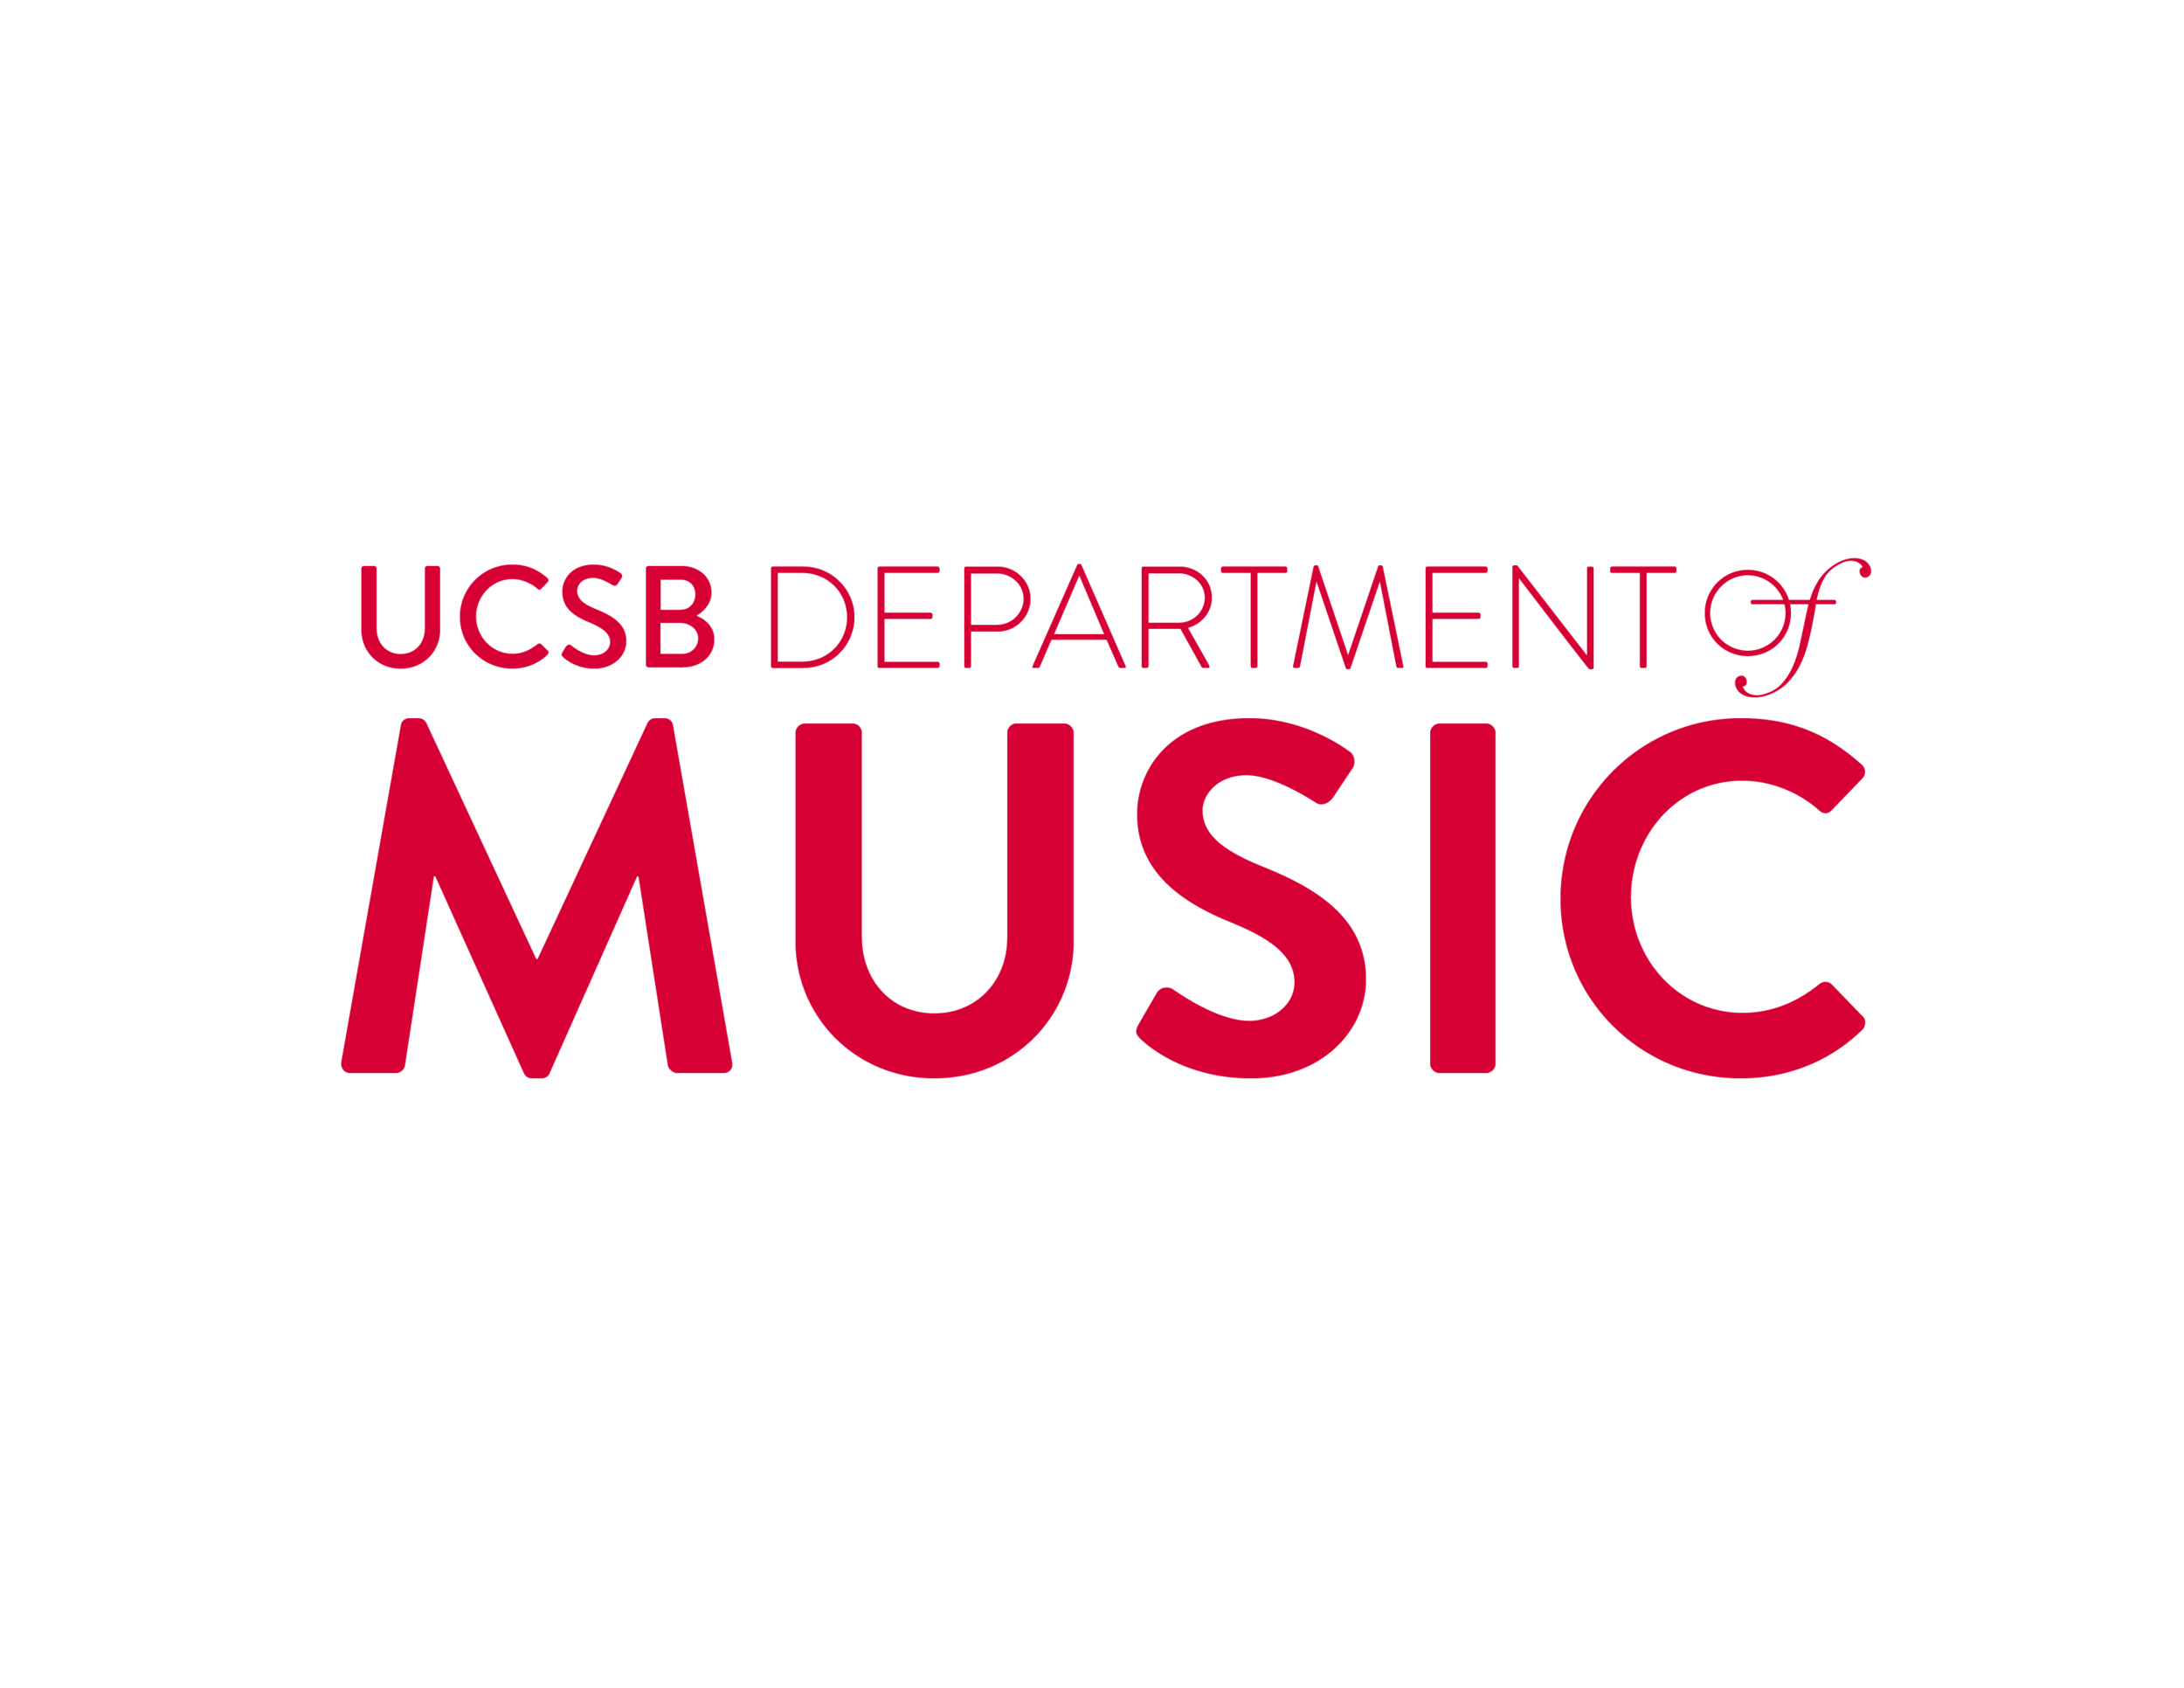 ucsb guidelines new logo and font use FINAL-07.png